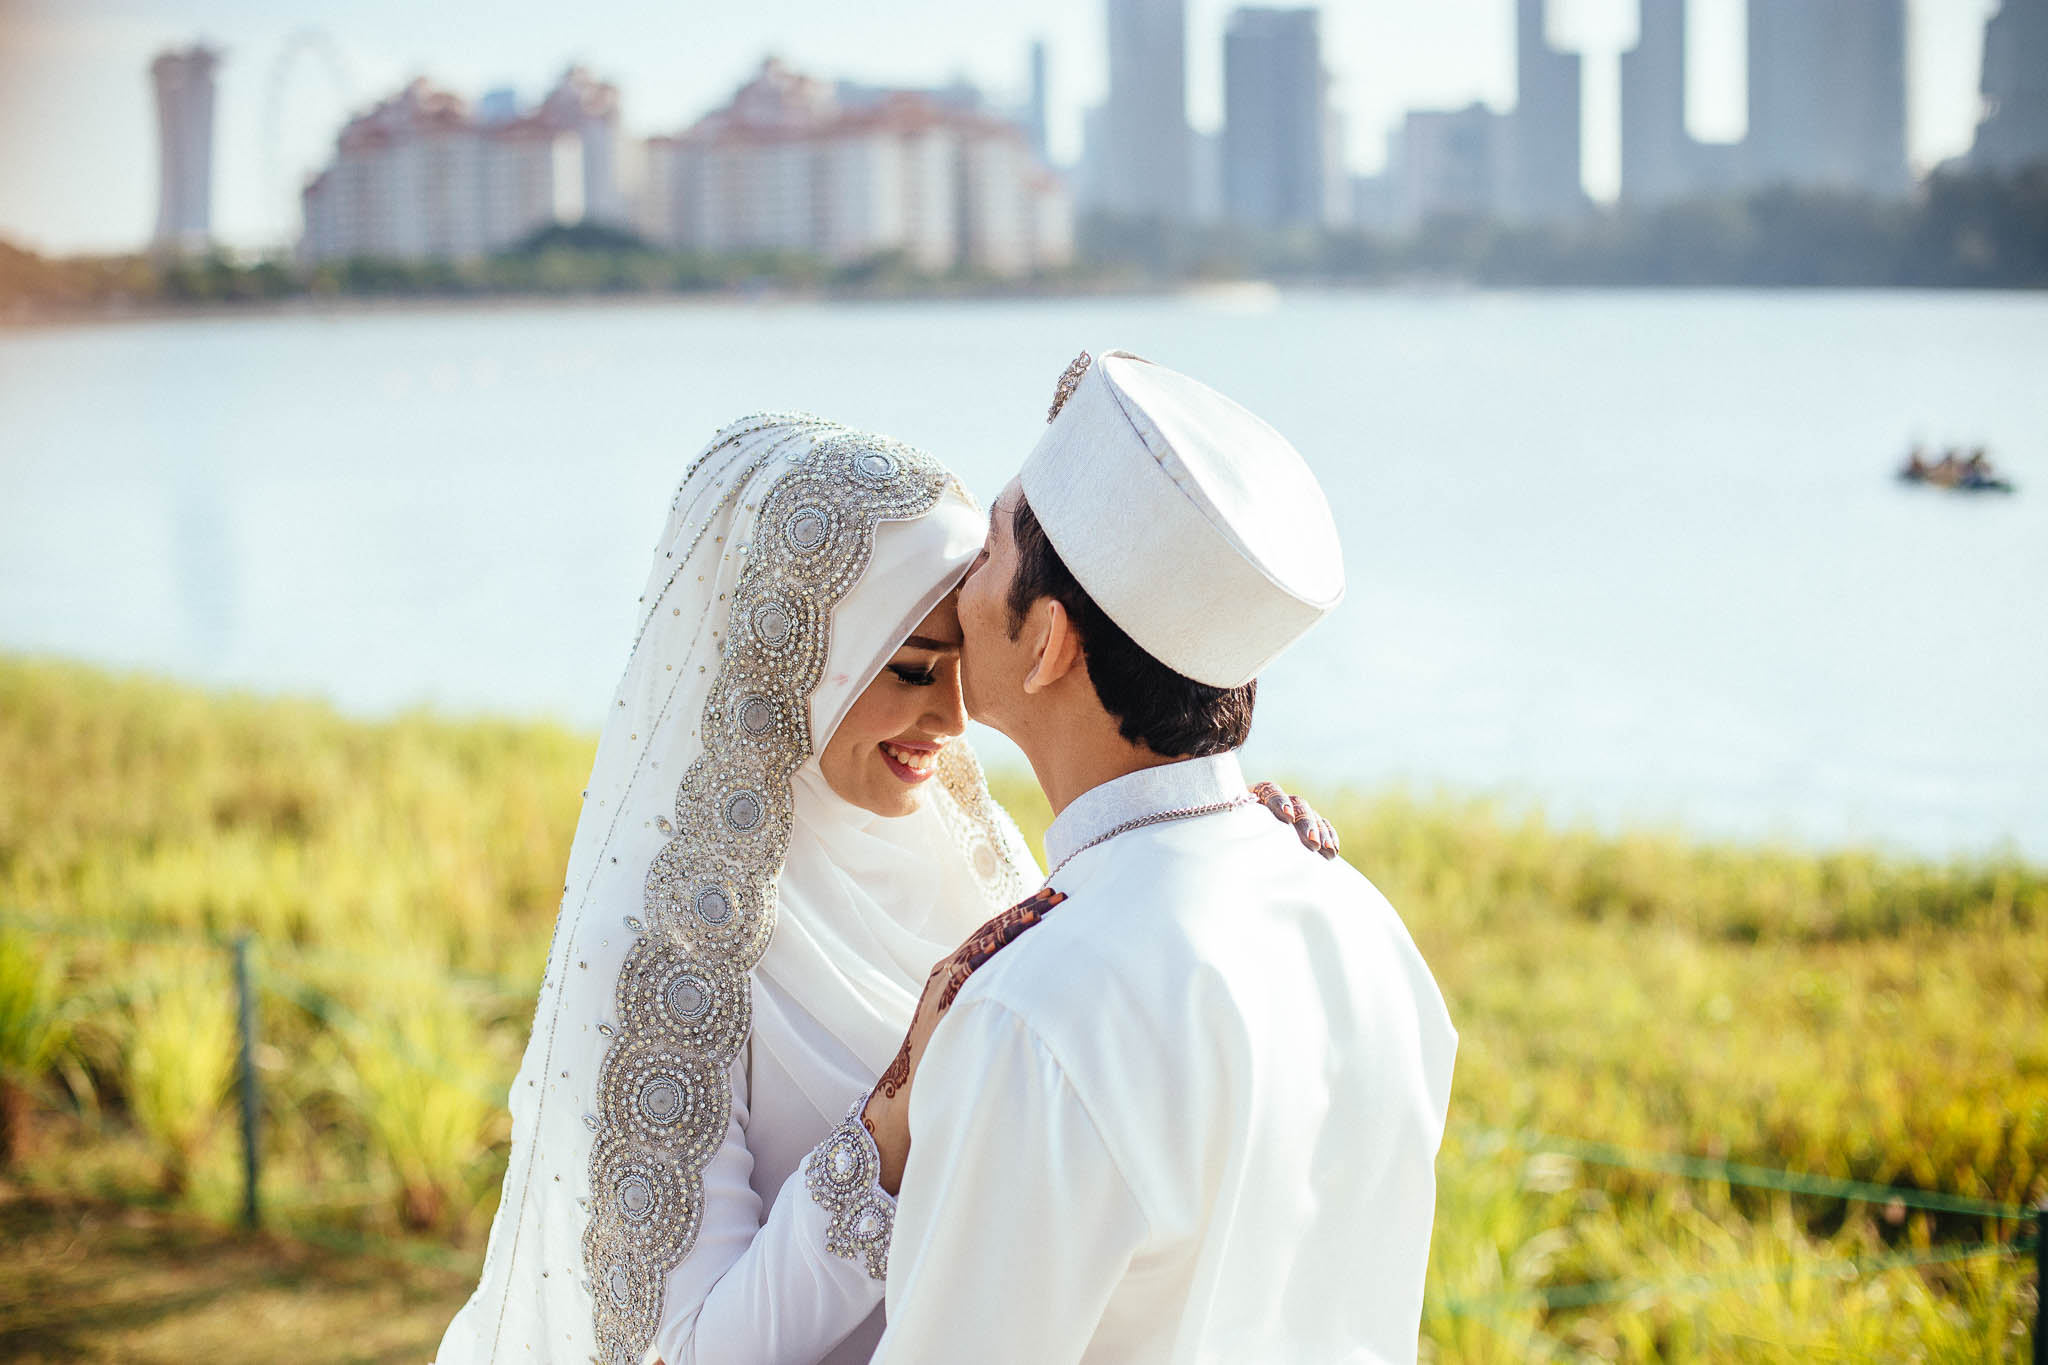 singapore-wedding-photographer-we-made-these-2016-selects-028.jpg